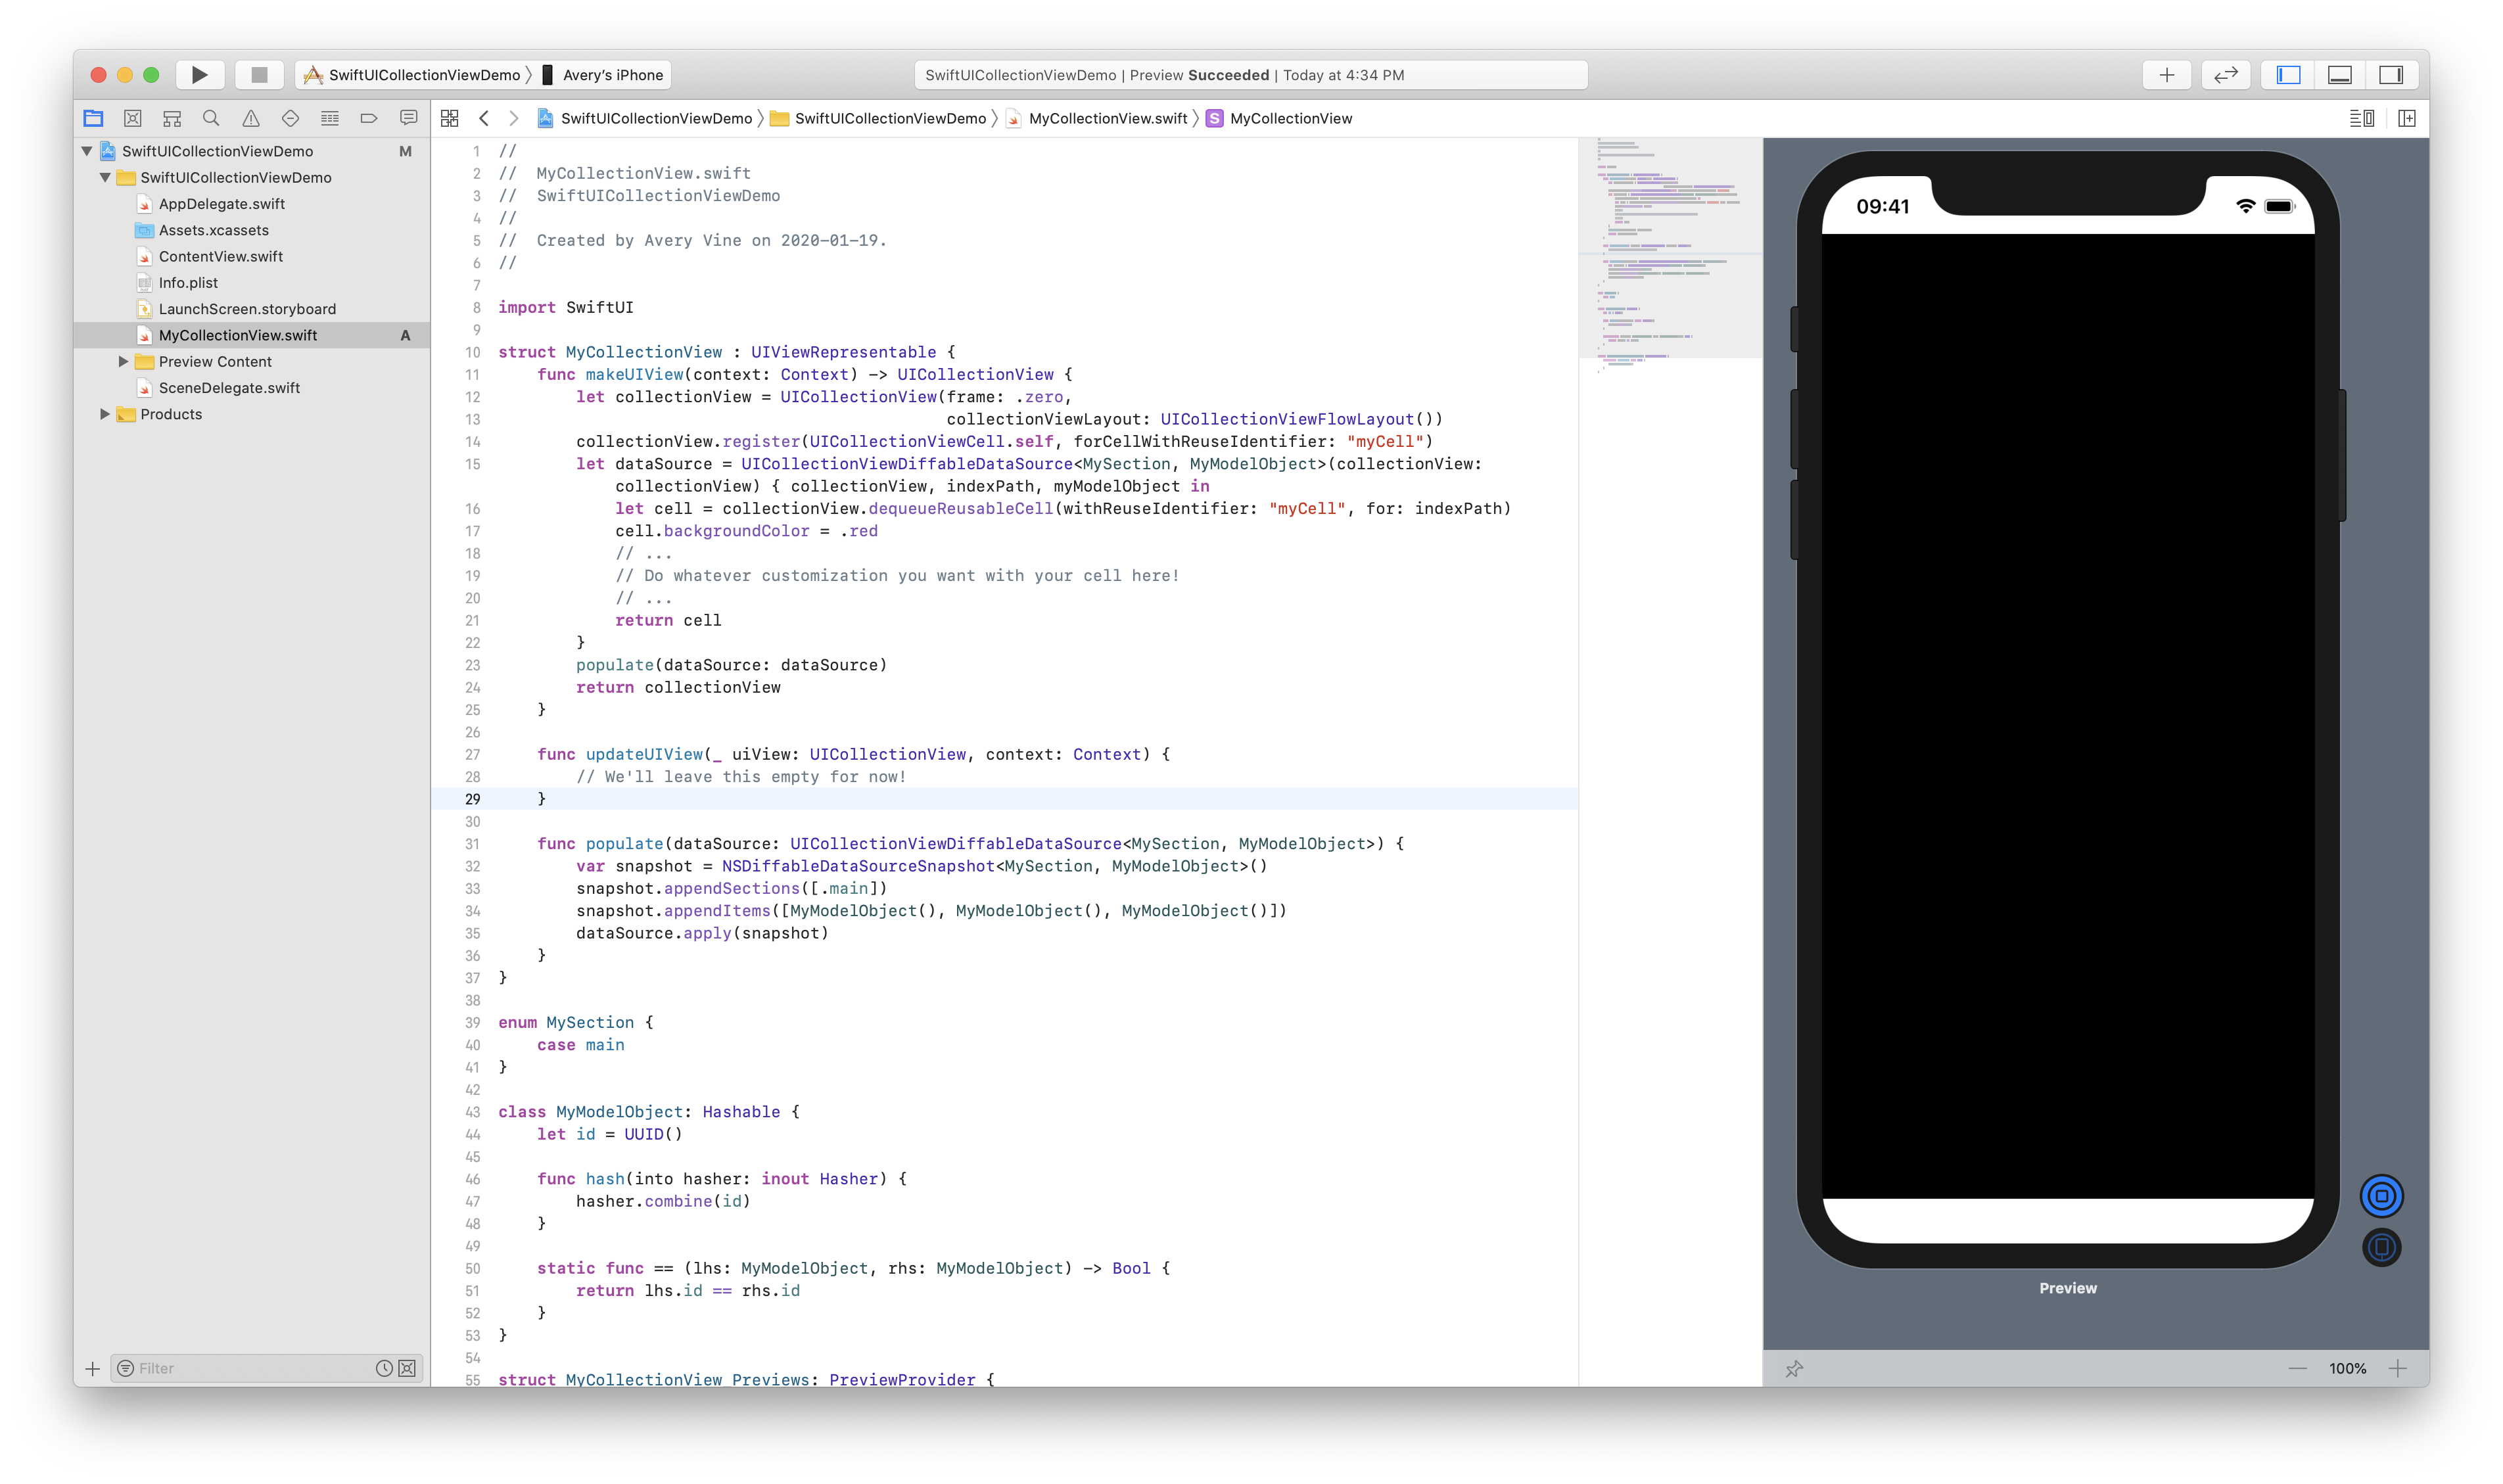 Collection in SwiftUI